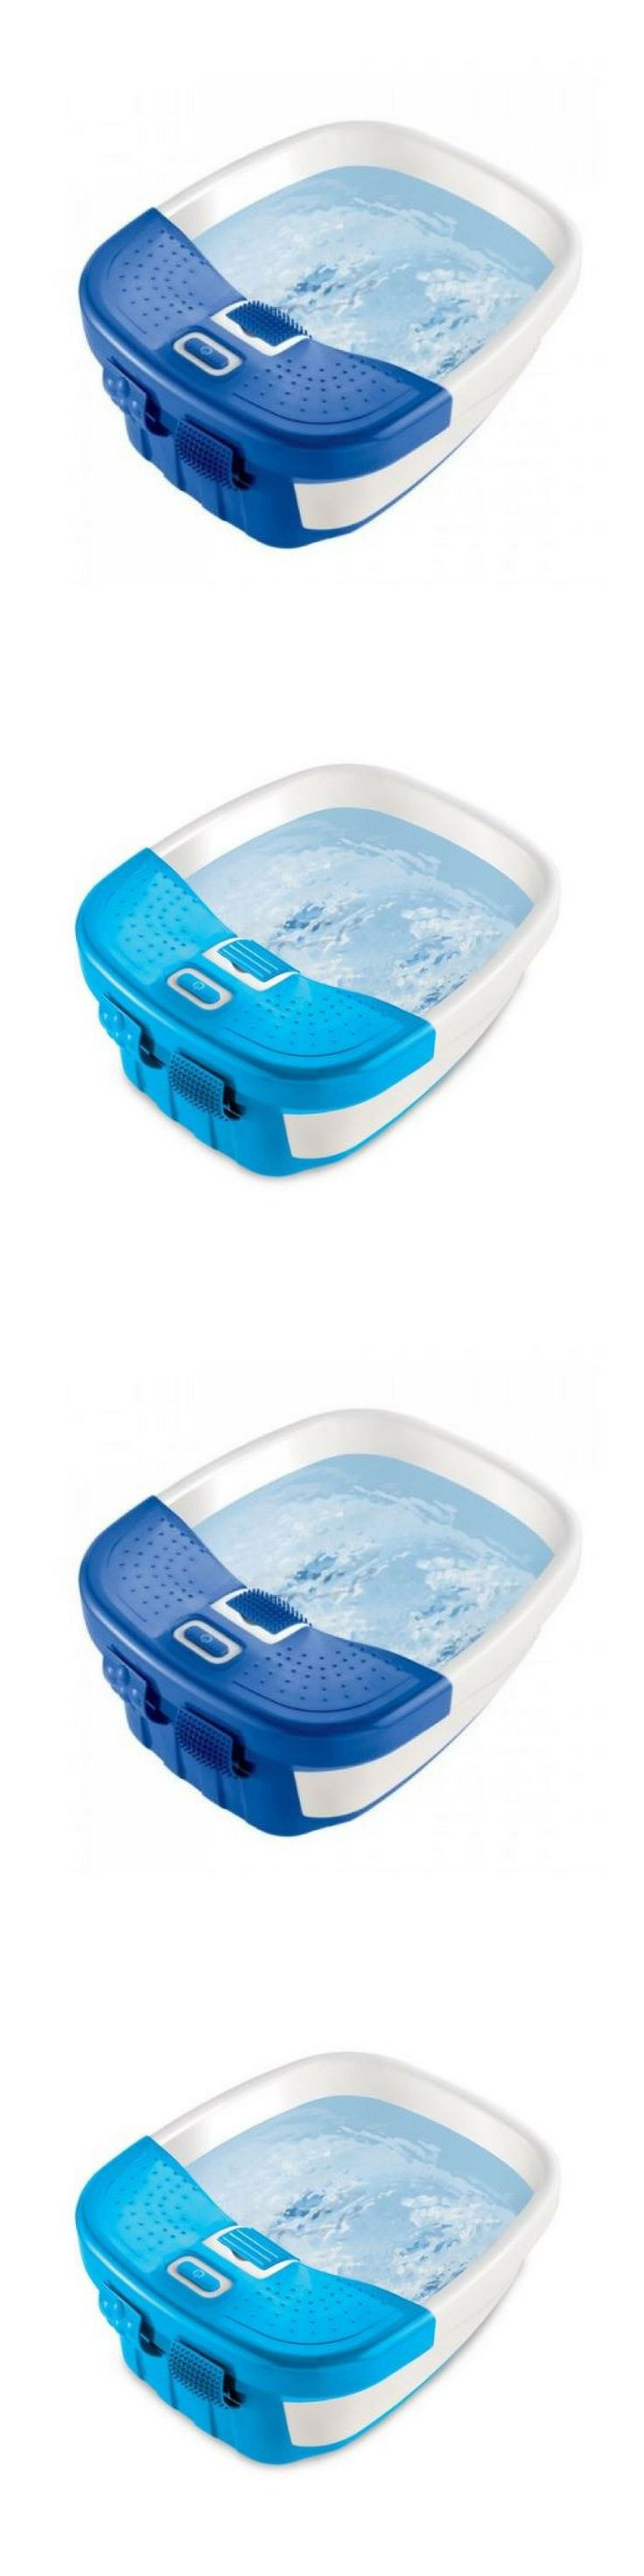 Spas Baths and Supplies: Foot Spa Bath Massager Feet Massage Heat Bubble Relaxation Pedicure Therapy BUY IT NOW ONLY: $34.19